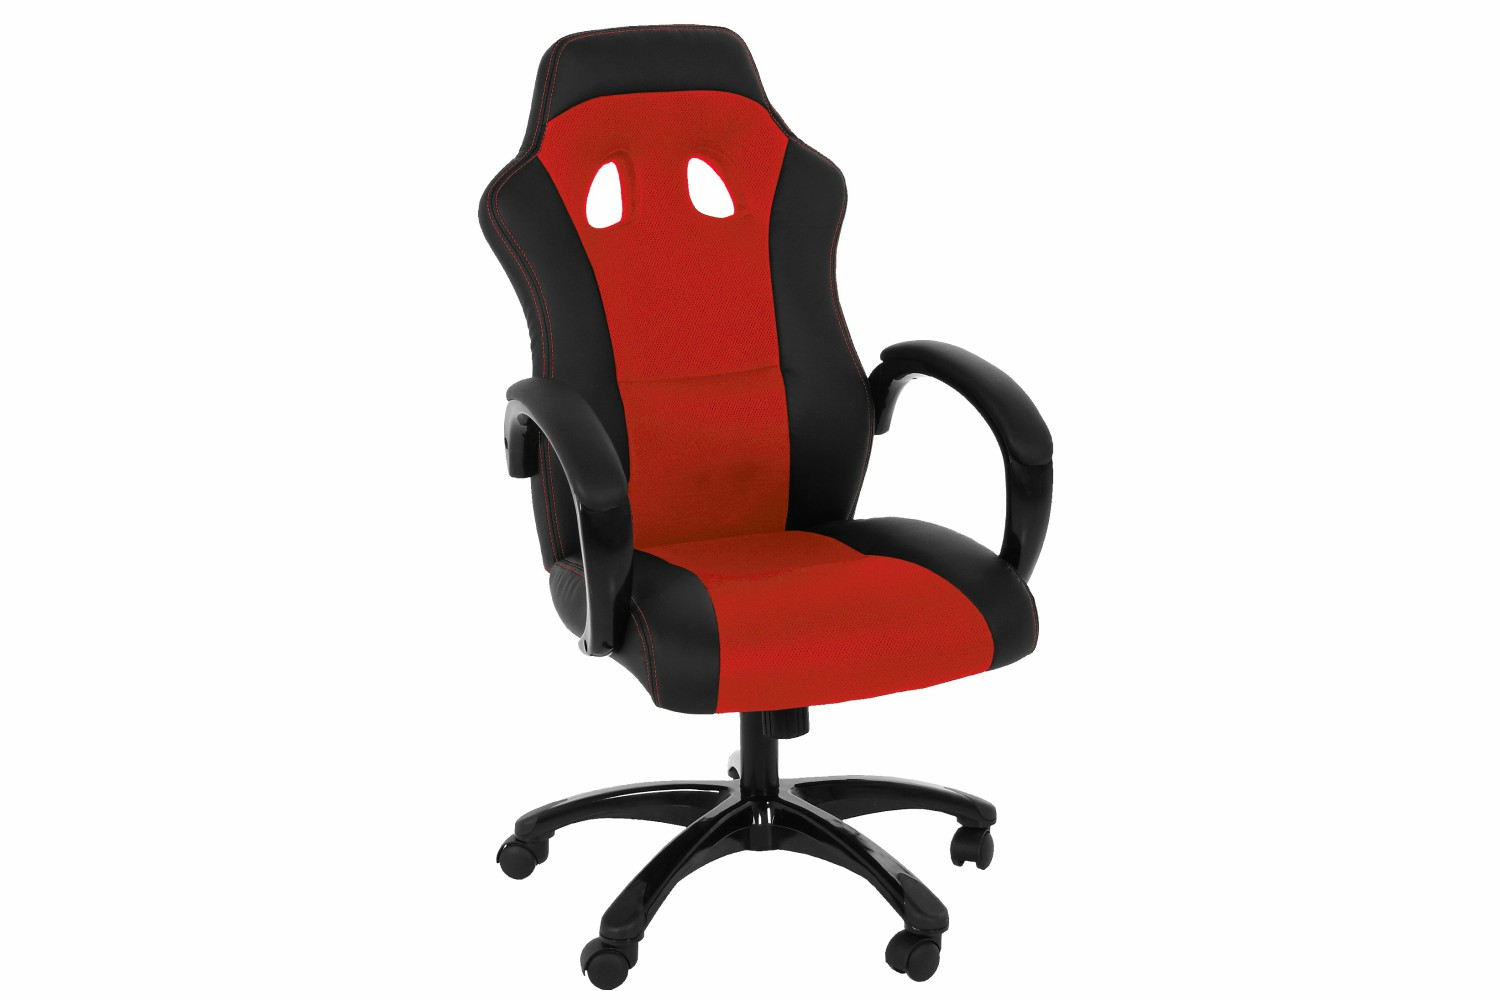 ergonomic chair harvey norman kids fold out race office red ireland